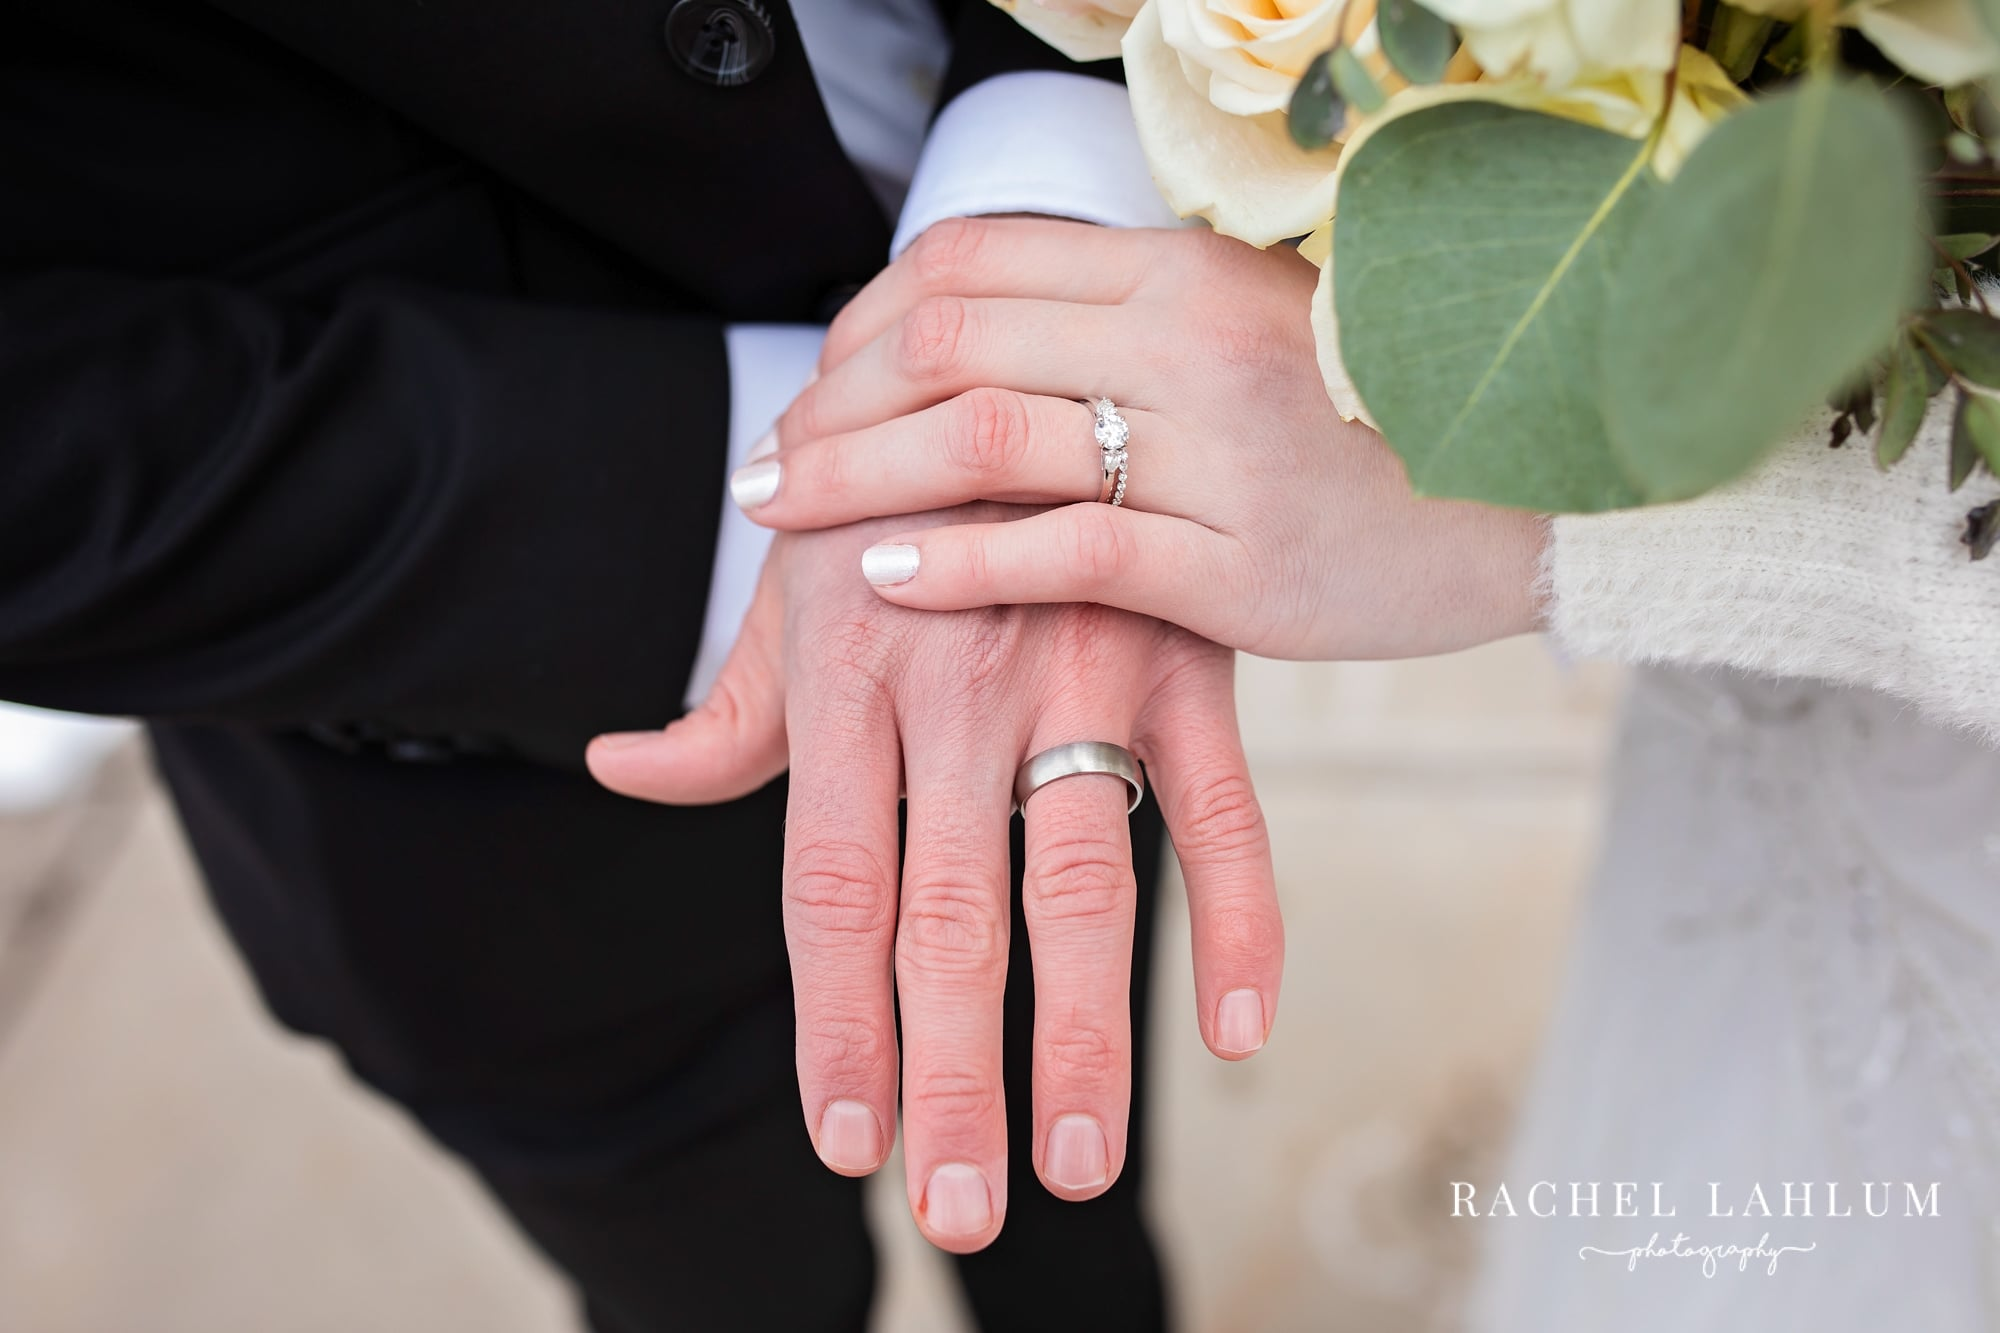 Bride and groom show their wedding rings.